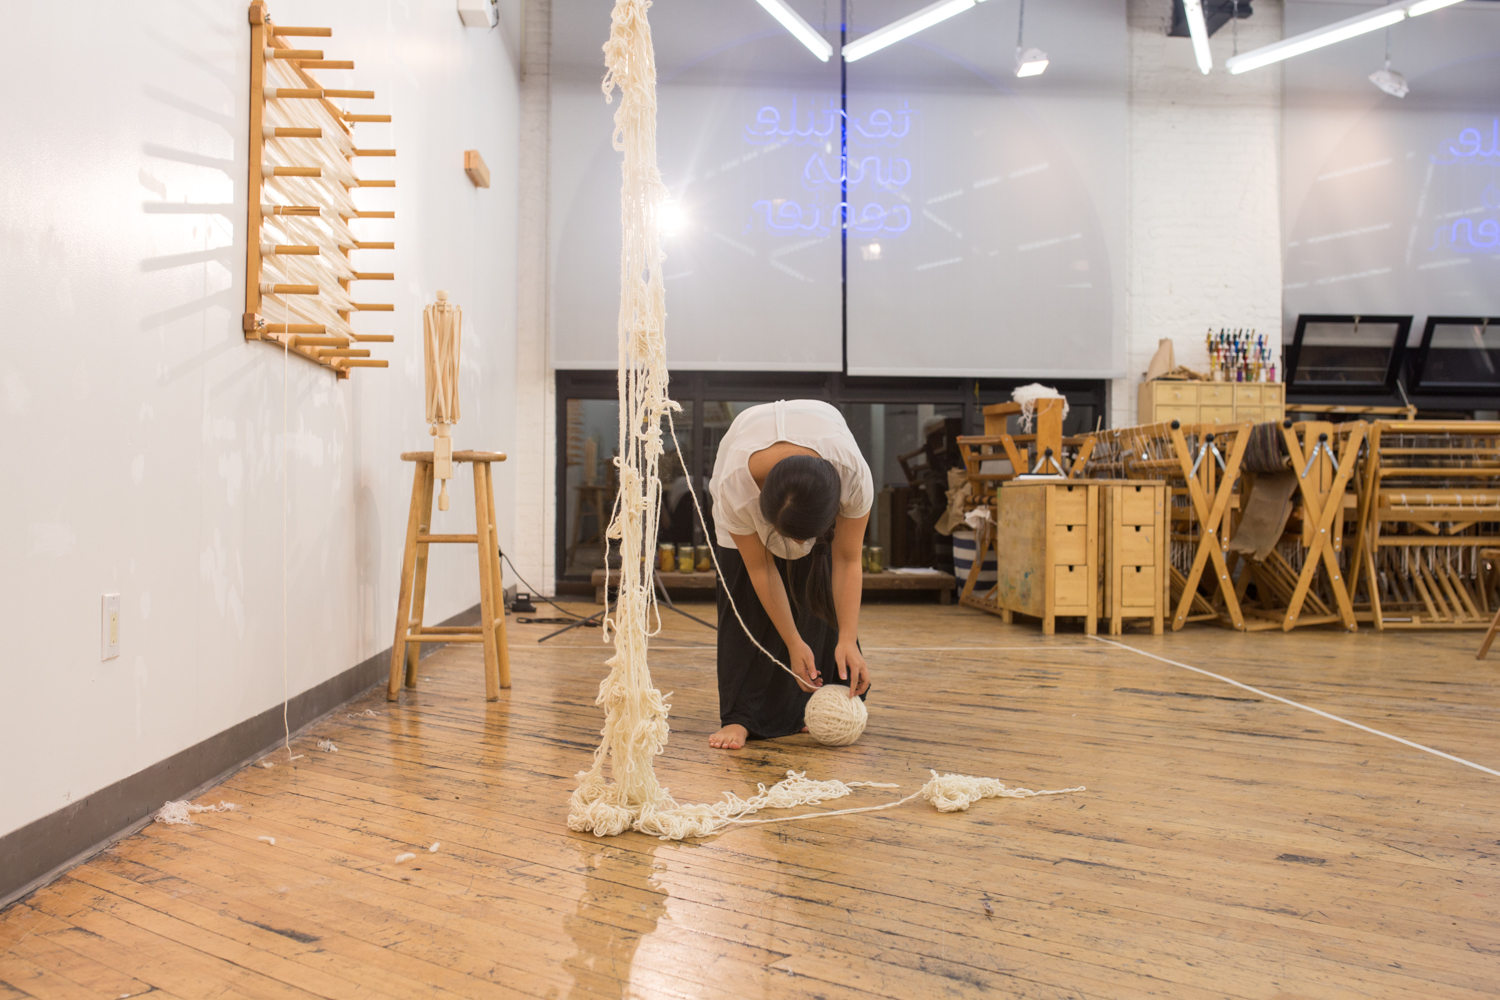 The artist is placing the ball of untangled yarn onto the floor. It's now at 6 inches in diameter.